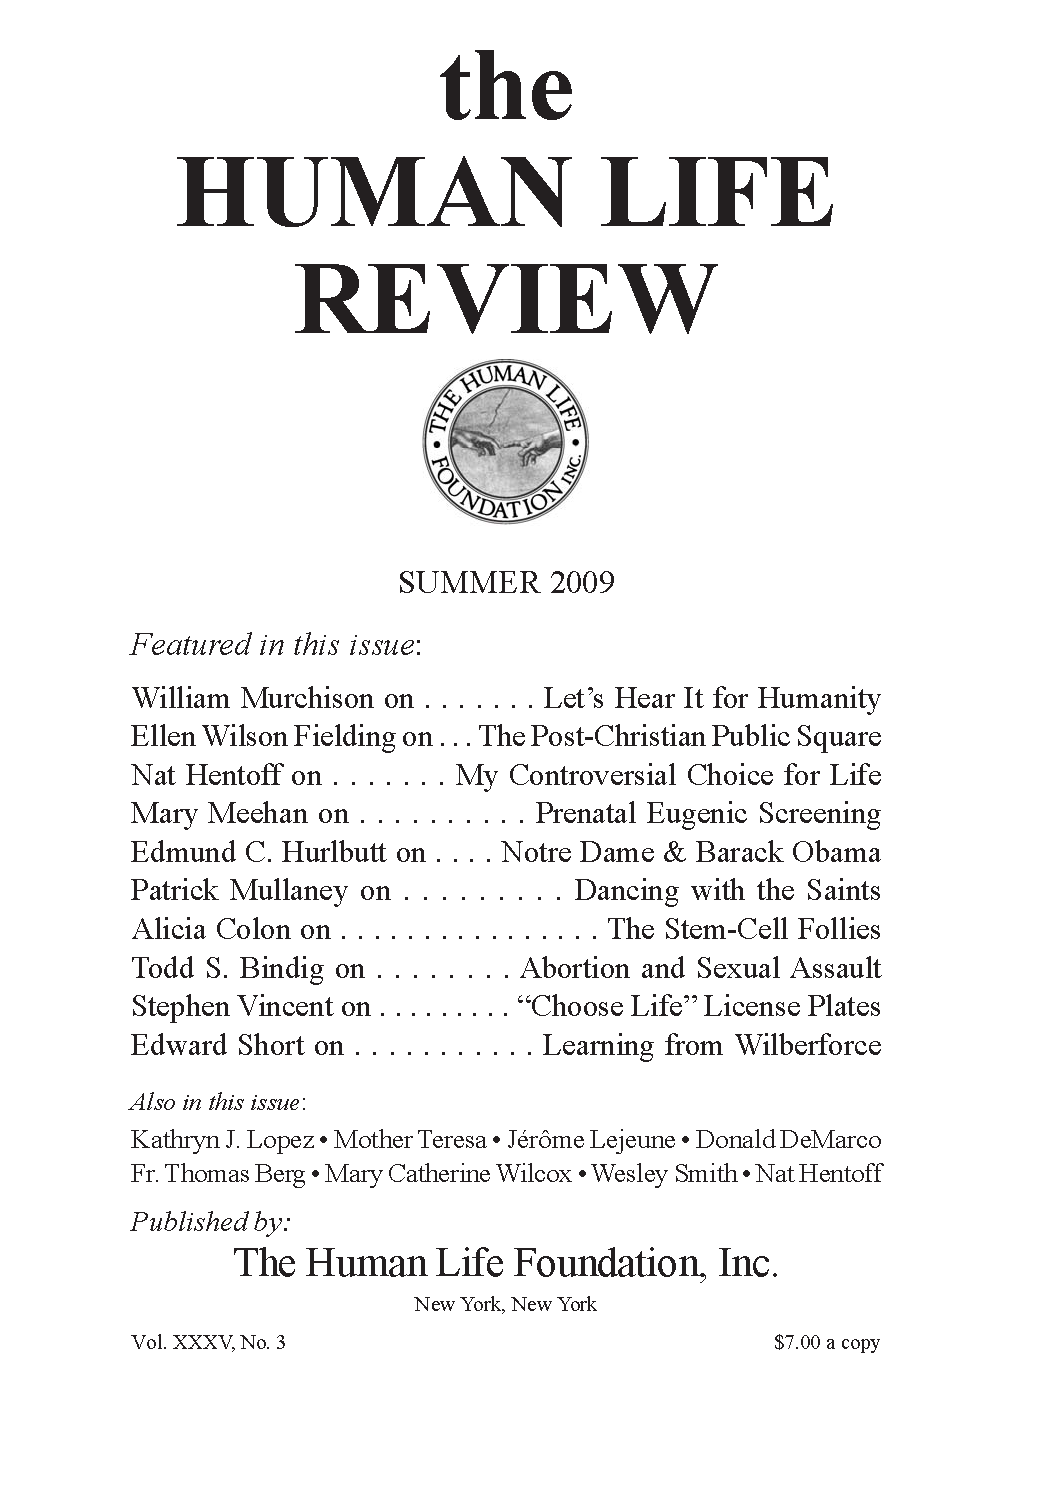 The Human Life Review Summer 2009 - The Human Life Review